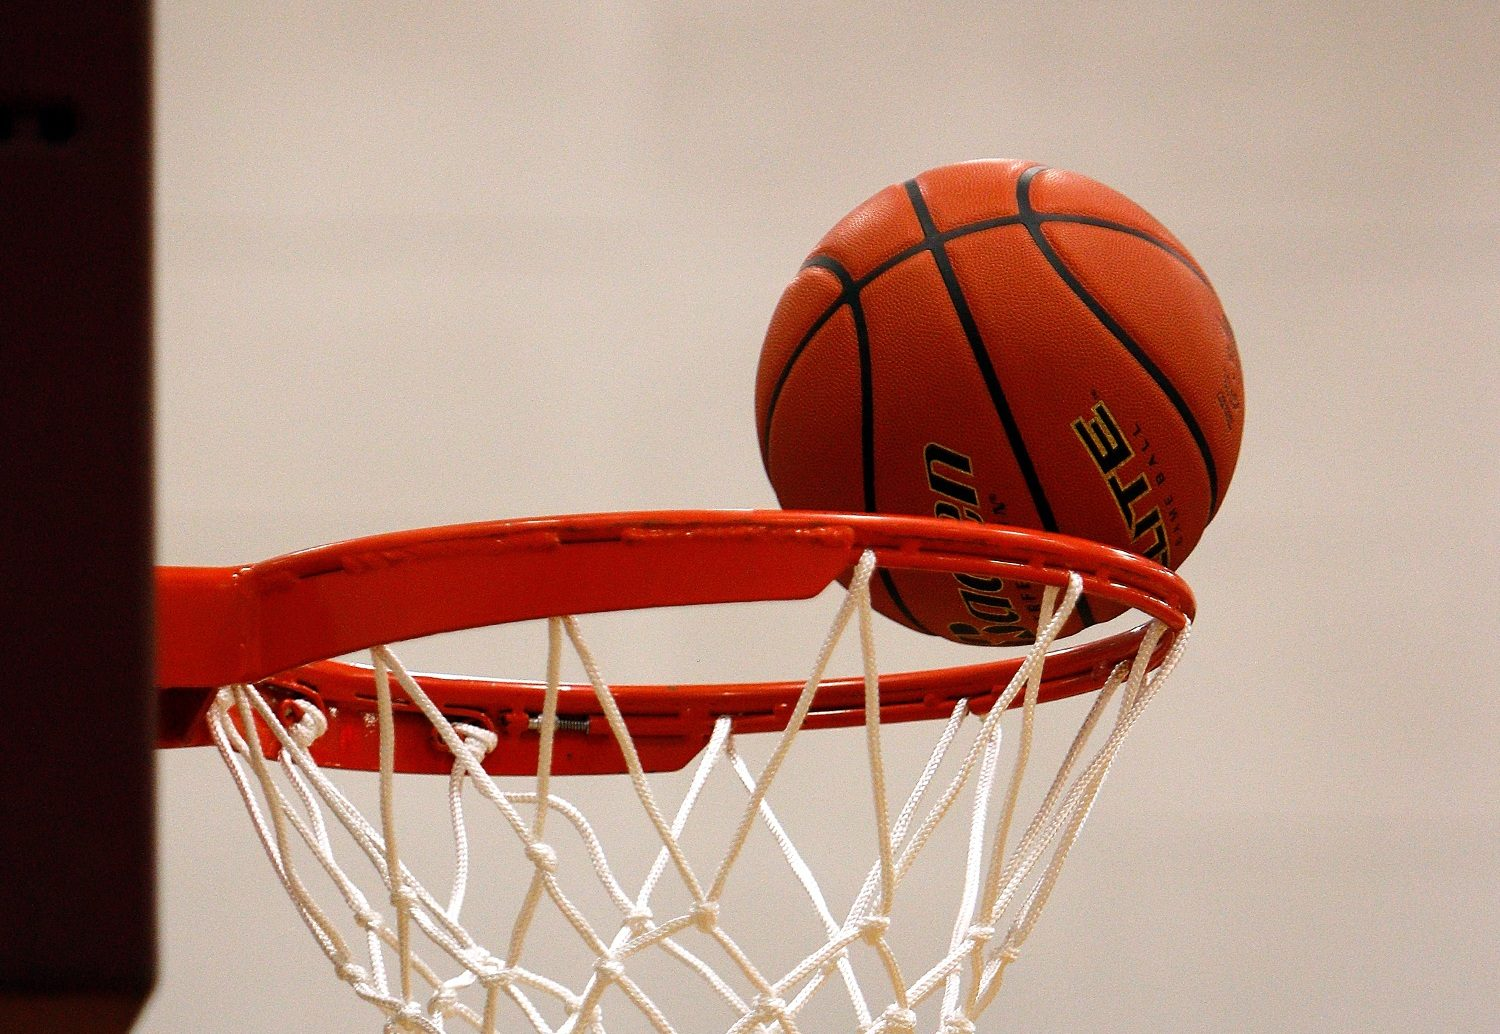 Basketball rim. File photo.